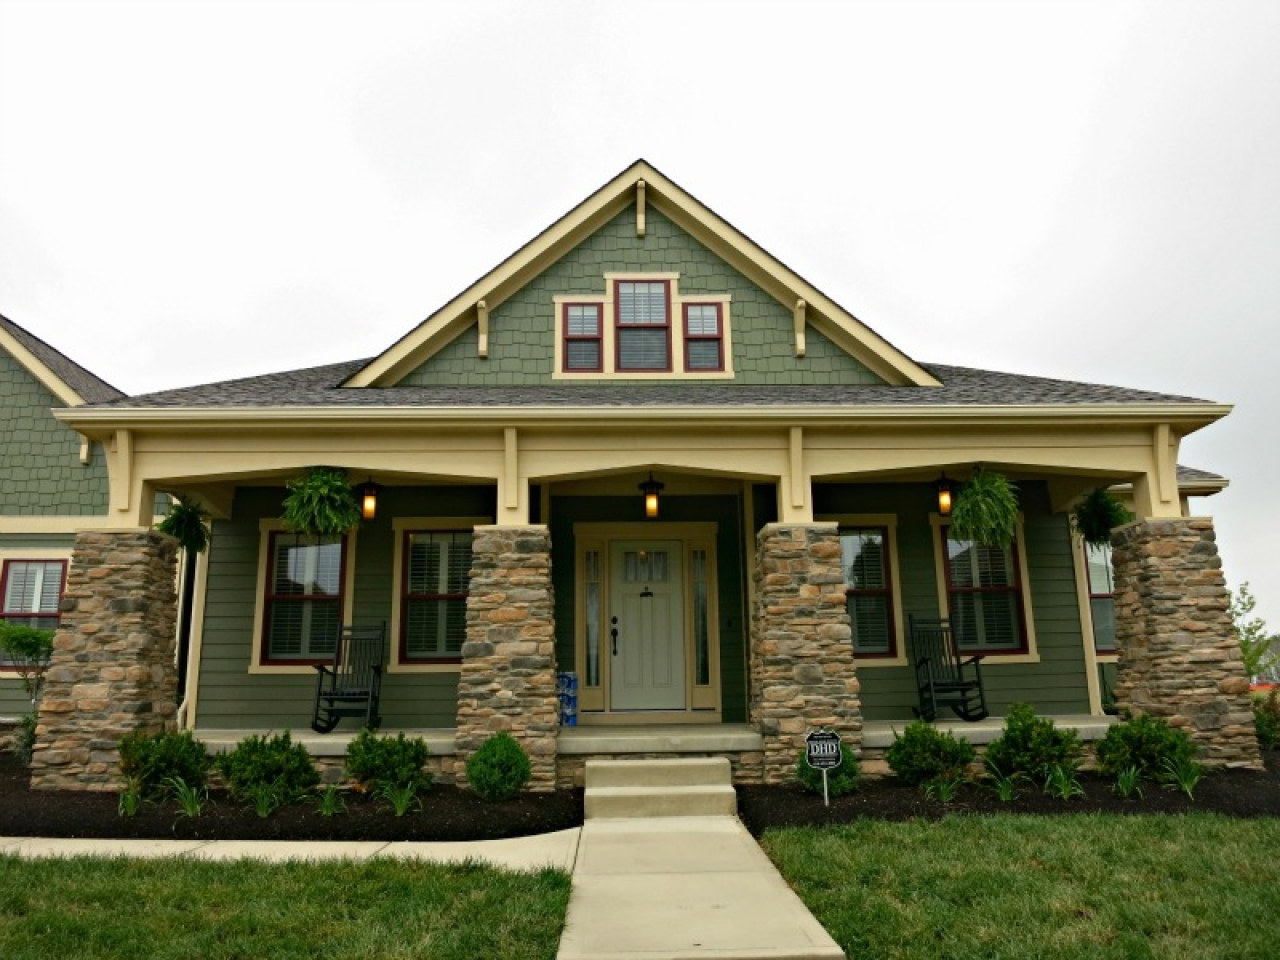 Small Bungalow House Plans Craftsman Bungalow House Plans